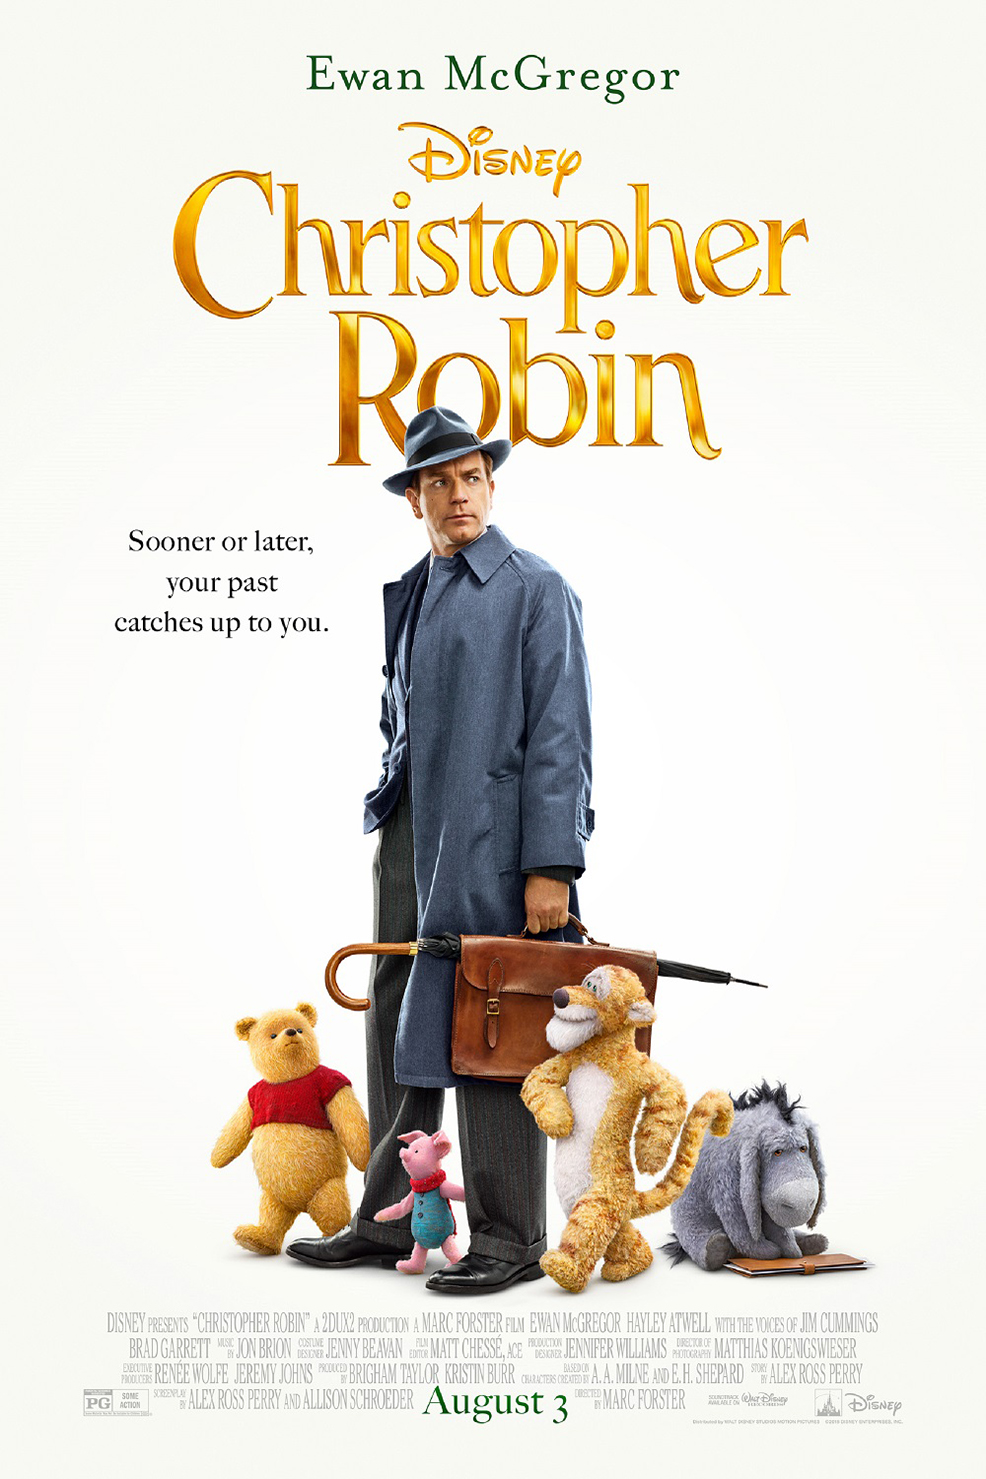 Poster for Disney's Christopher Robin